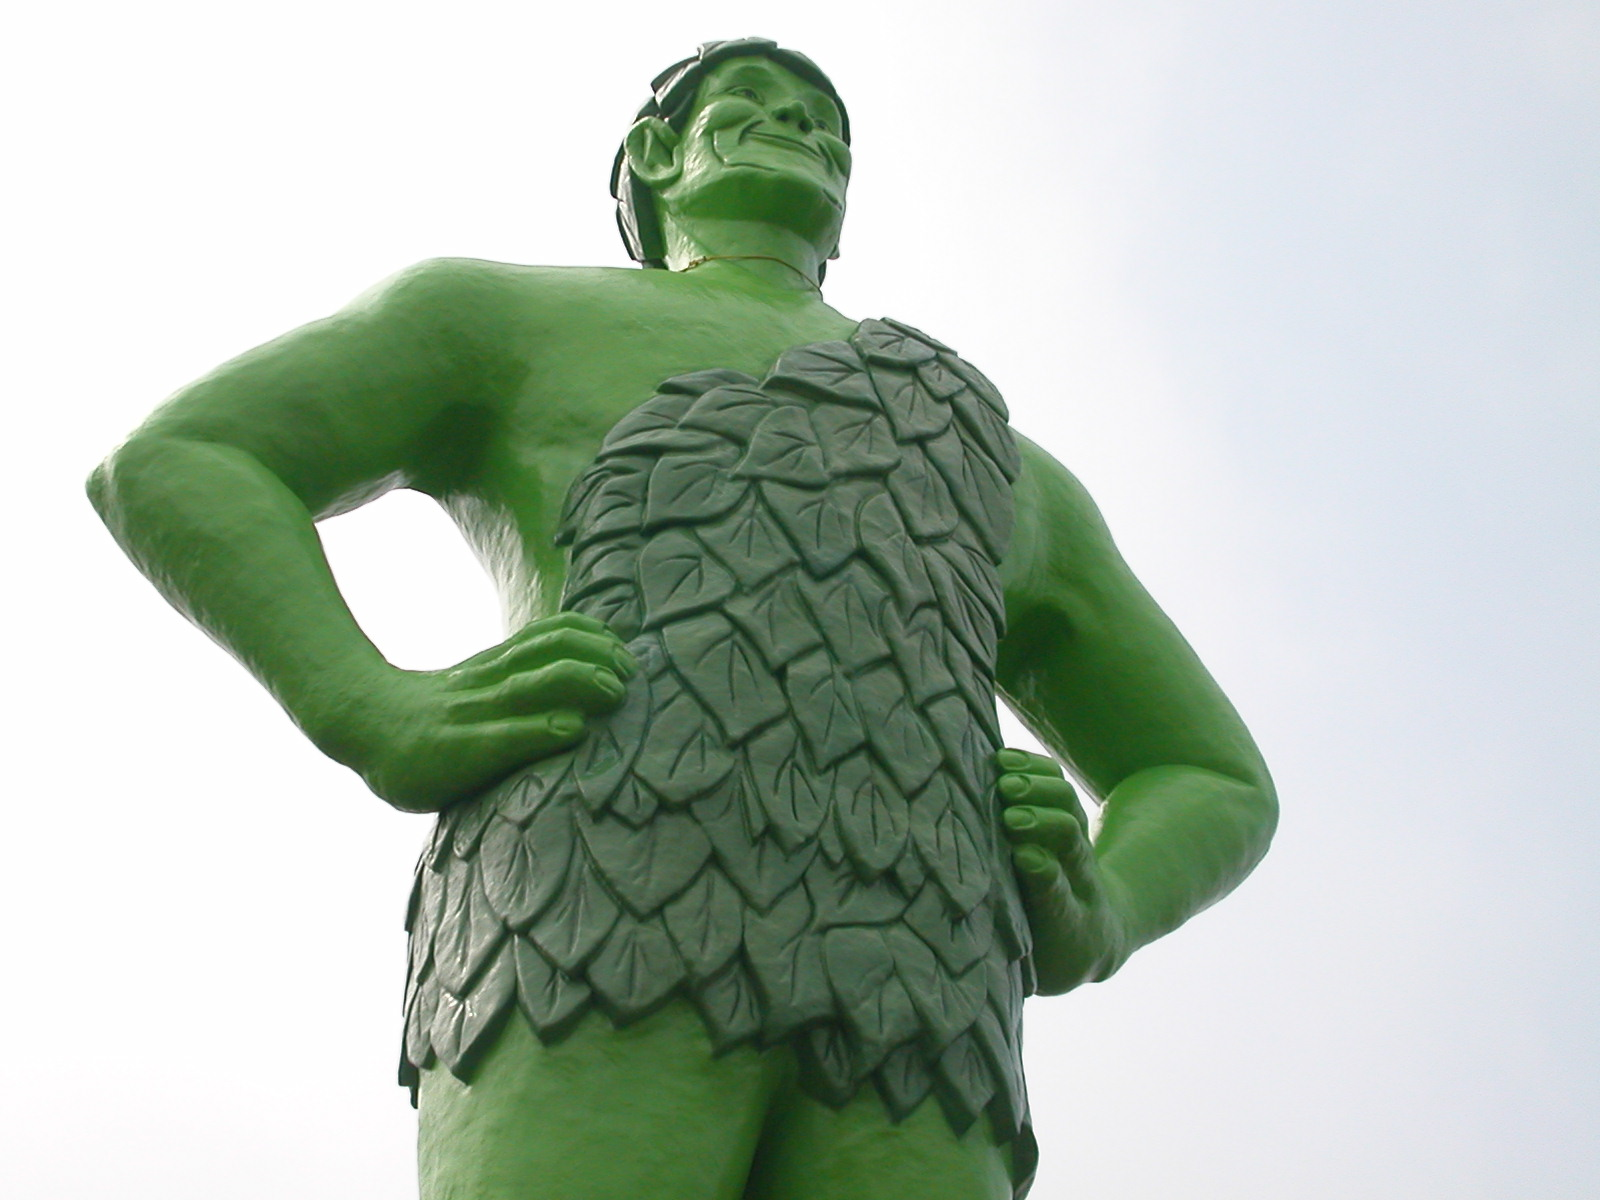 File:Jolly green giant.jpg